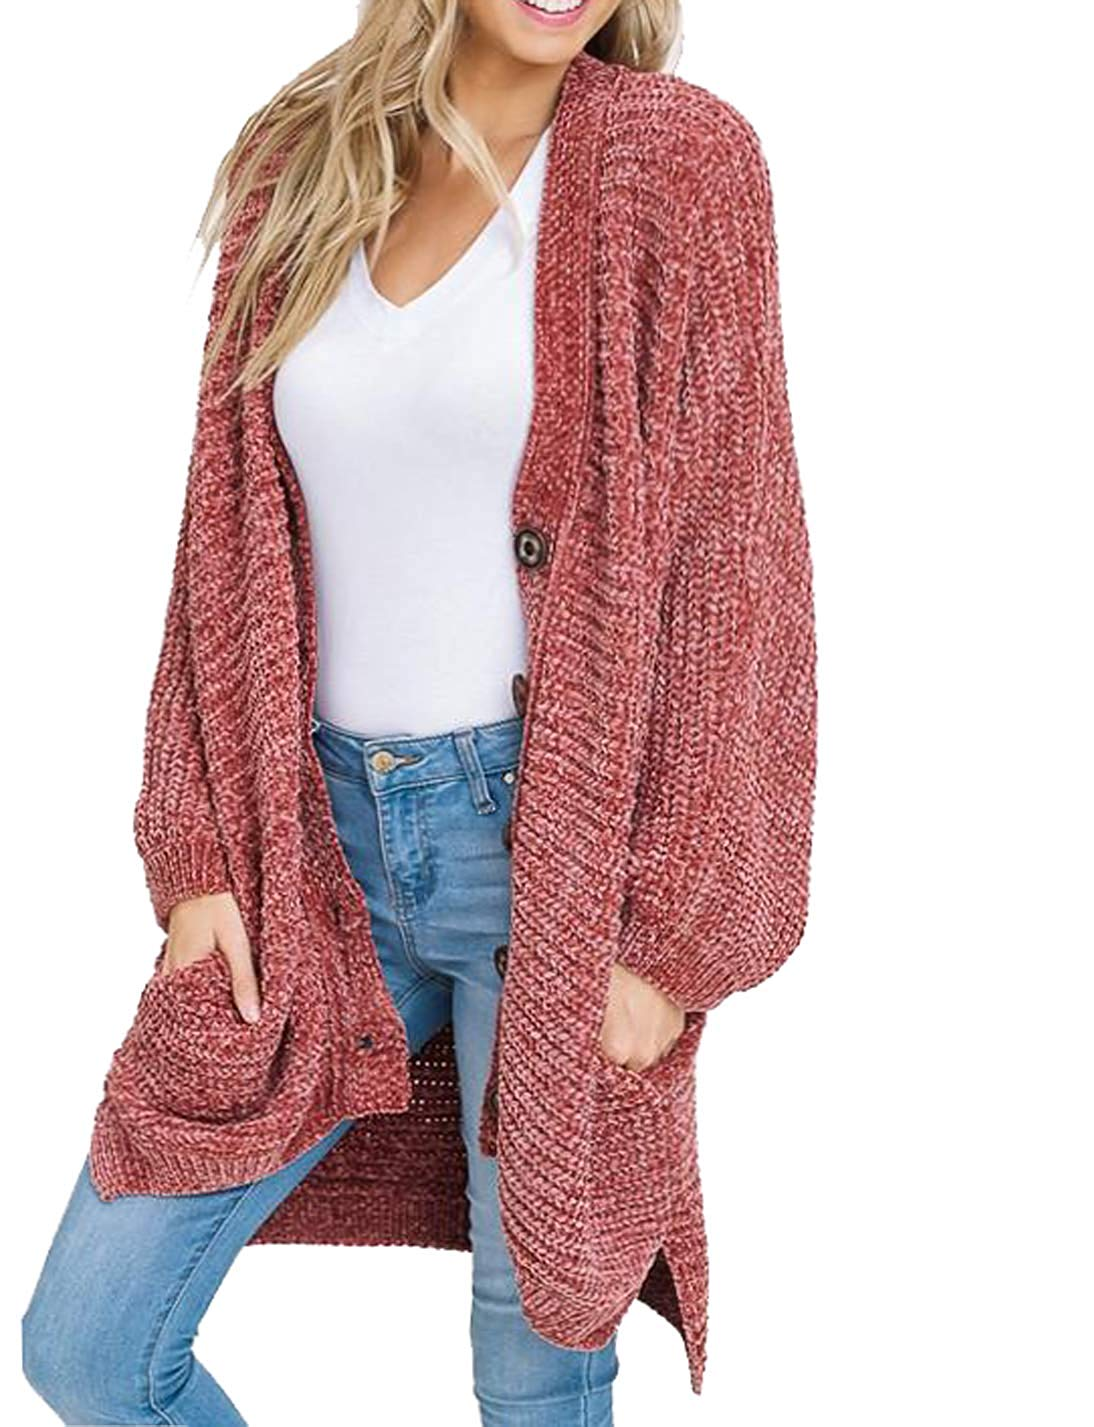 a733e921e7 Get Quotations · YONYWA Plus Size Womens Cardigans Boyfriend Long Cable  Knit Button Cardigan Sweaters with Pockets